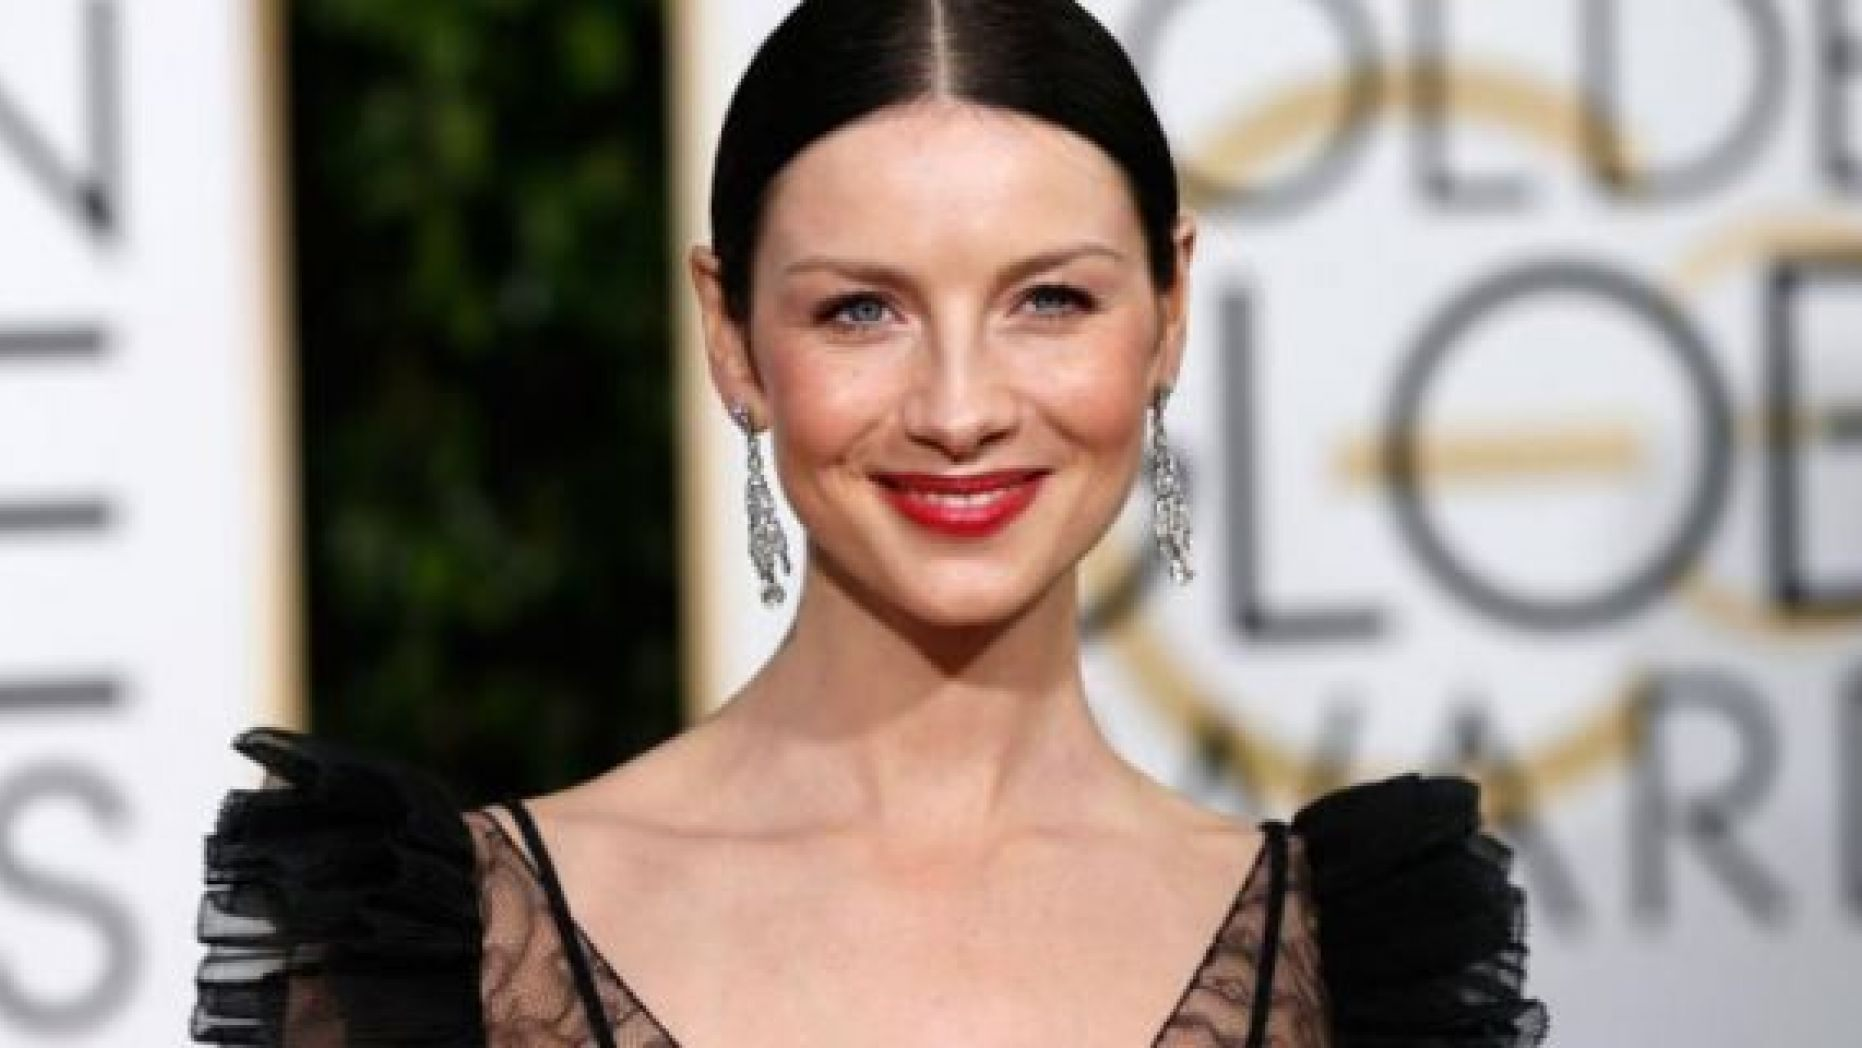 The Star: Caitriona Balfe The Show: Golden Globes The Makeup Artist: Molly R. Stern The Products: By layering Chanel Rouge Coco Ultra Hydrating Lip Colour in Jeanne ($37) and Chanel Rouge Coco Stylo Complete Care Lipshine in Histoire ($37), Stern created an elegant, long-lasting pout.